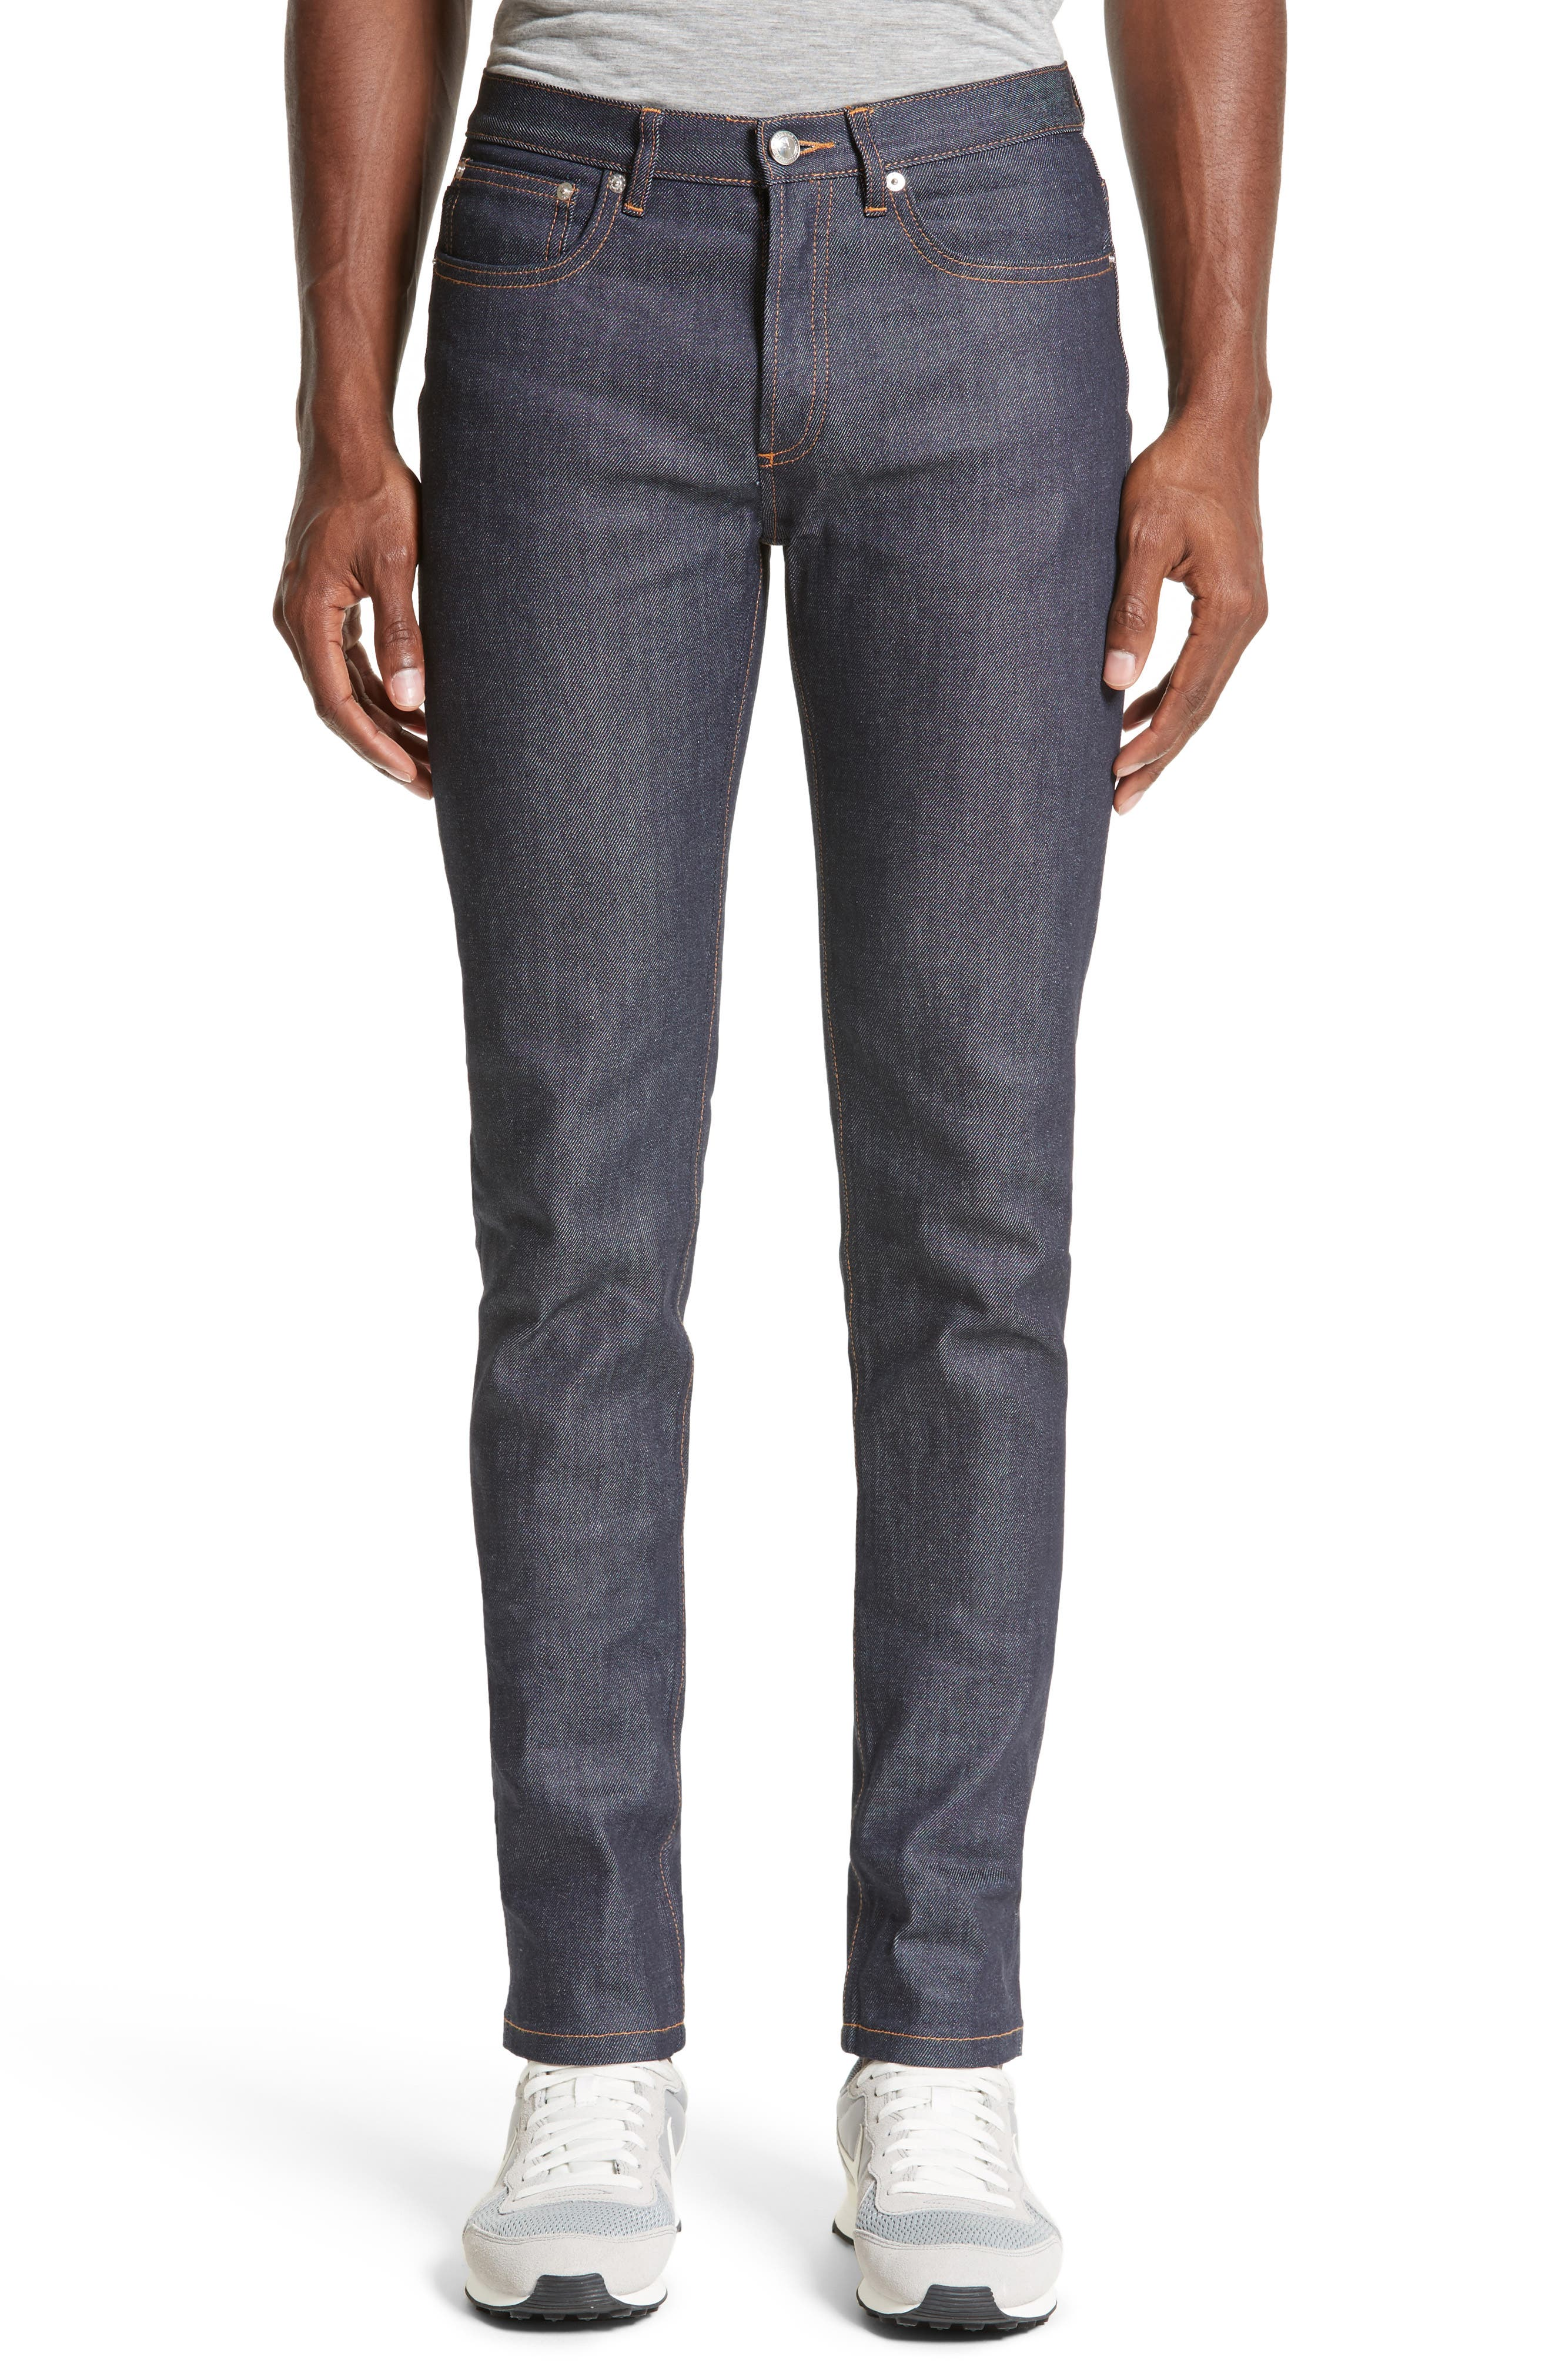 A.P.C. Standard Regular Fit Jeans